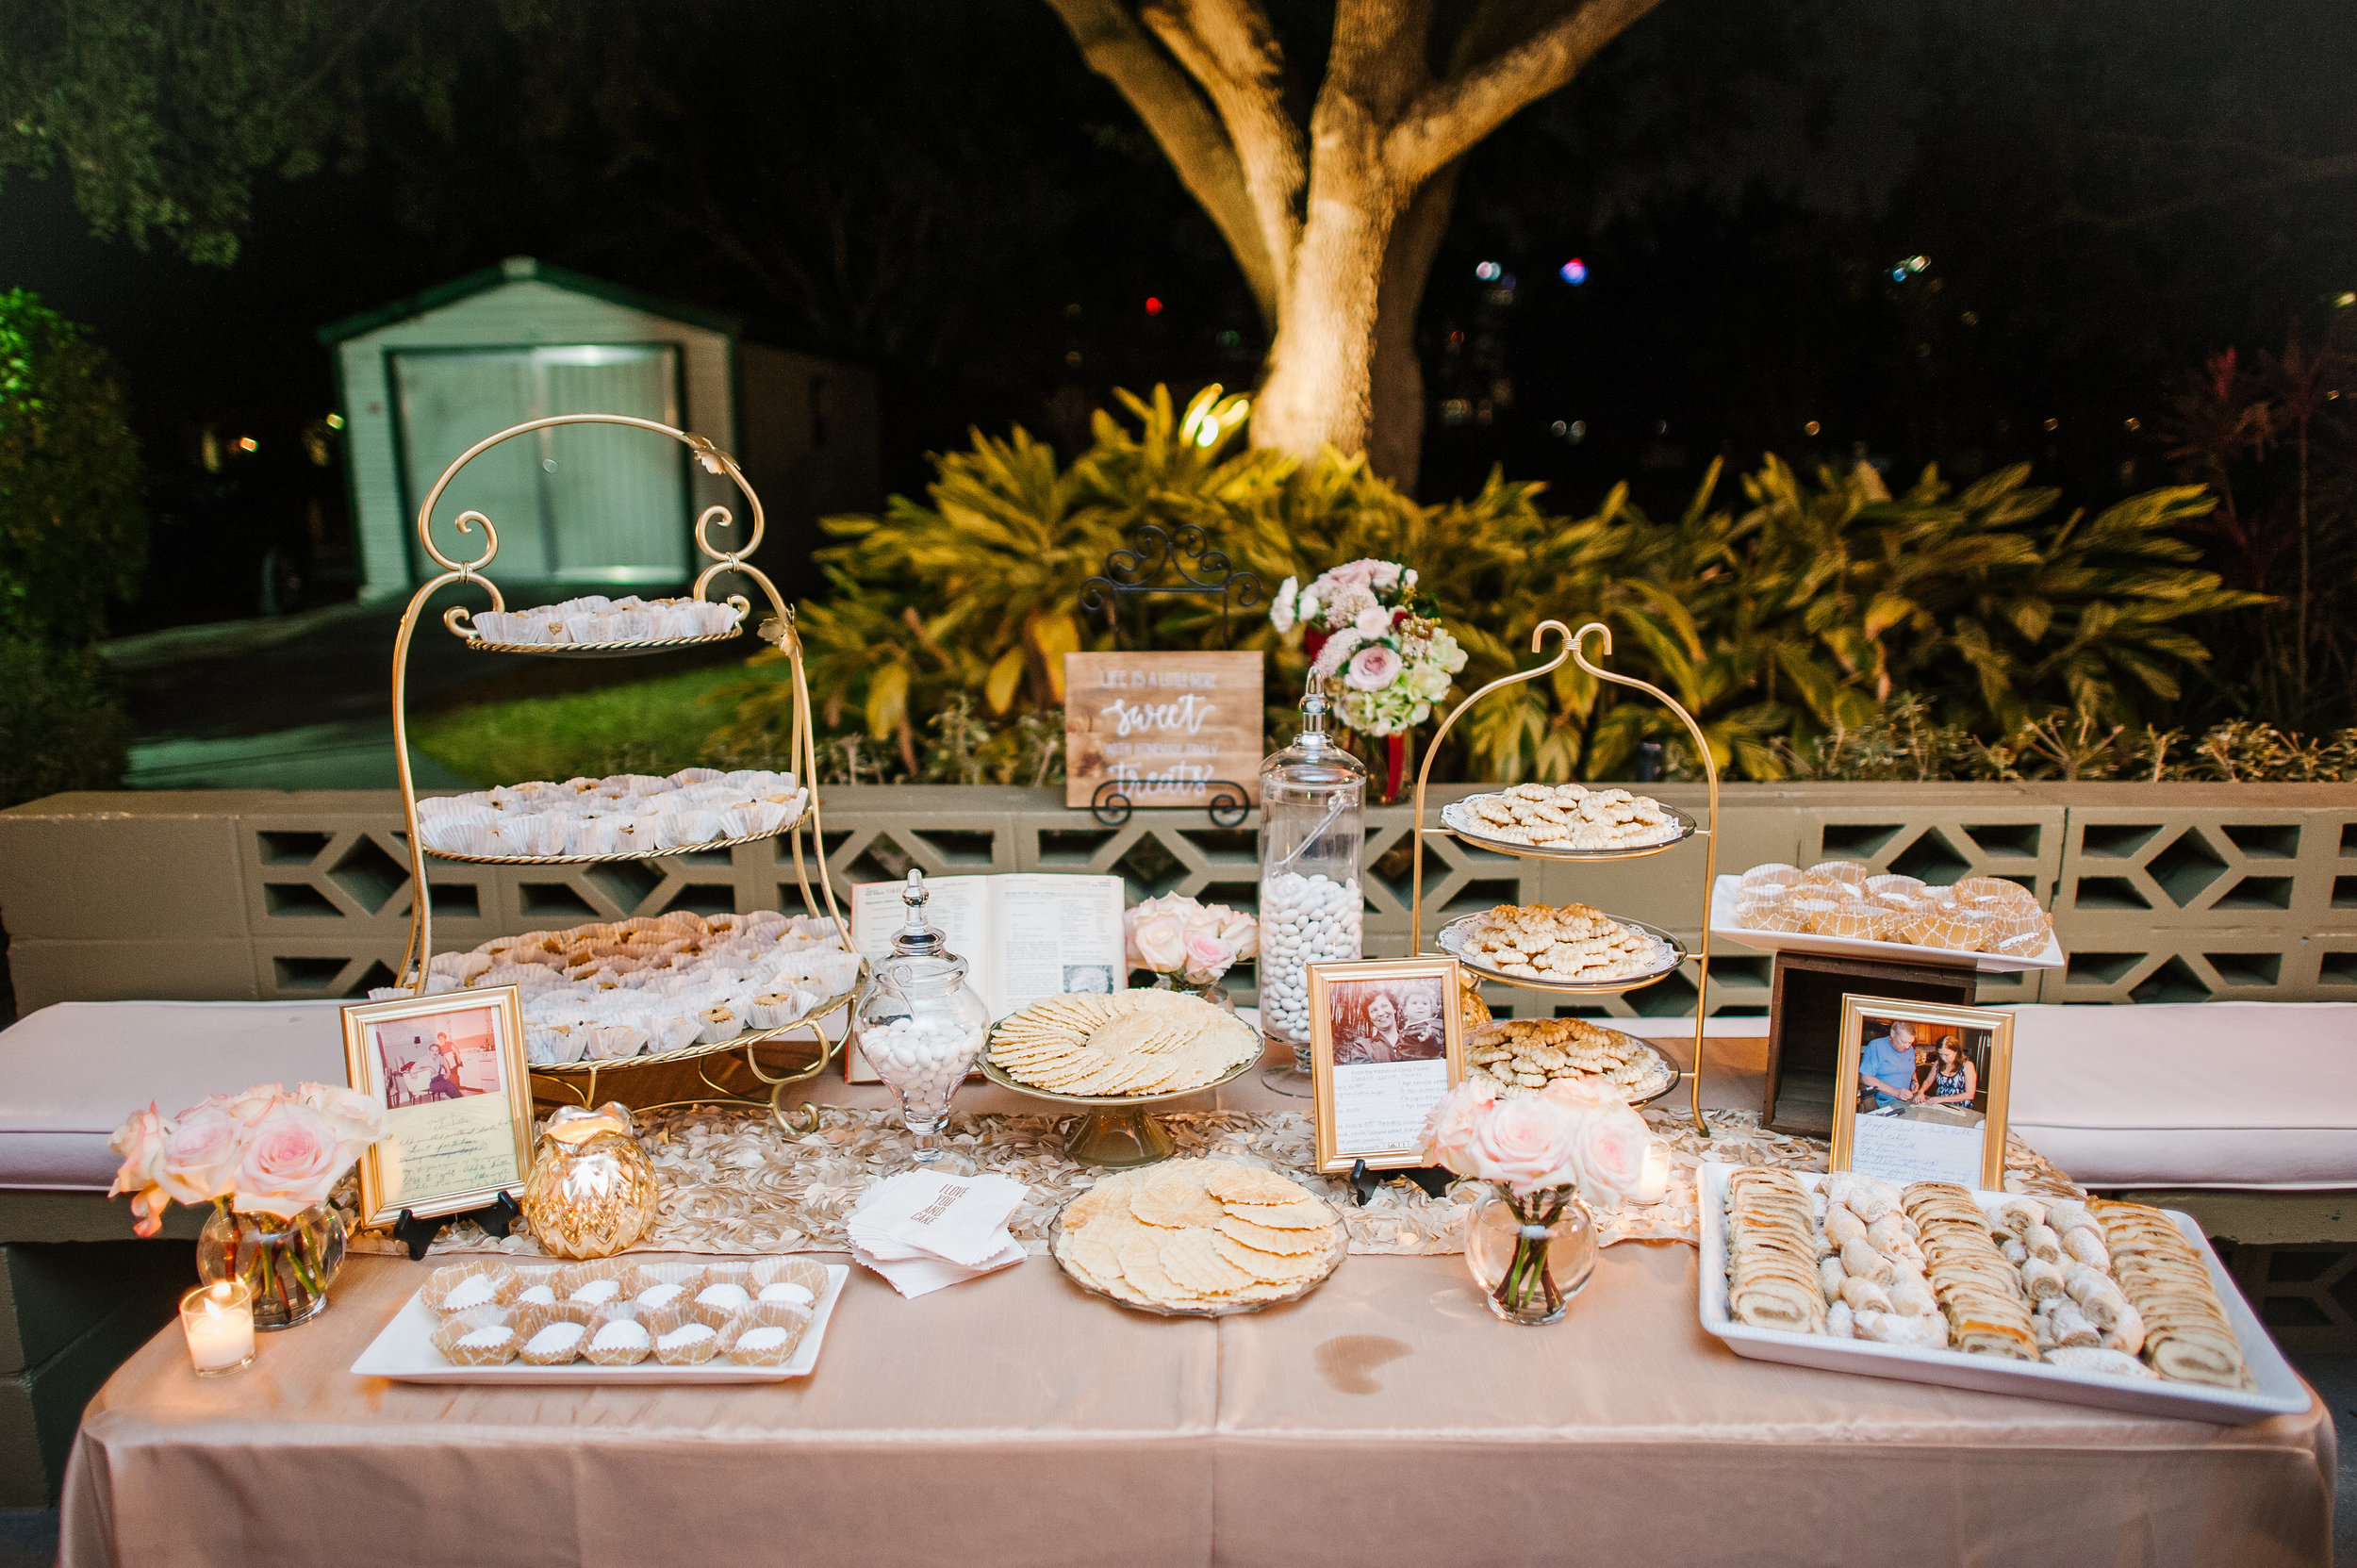 Trays and platters of homemade cookies were provided to guests for late night snacks. Each cookie represented a special family recipe!